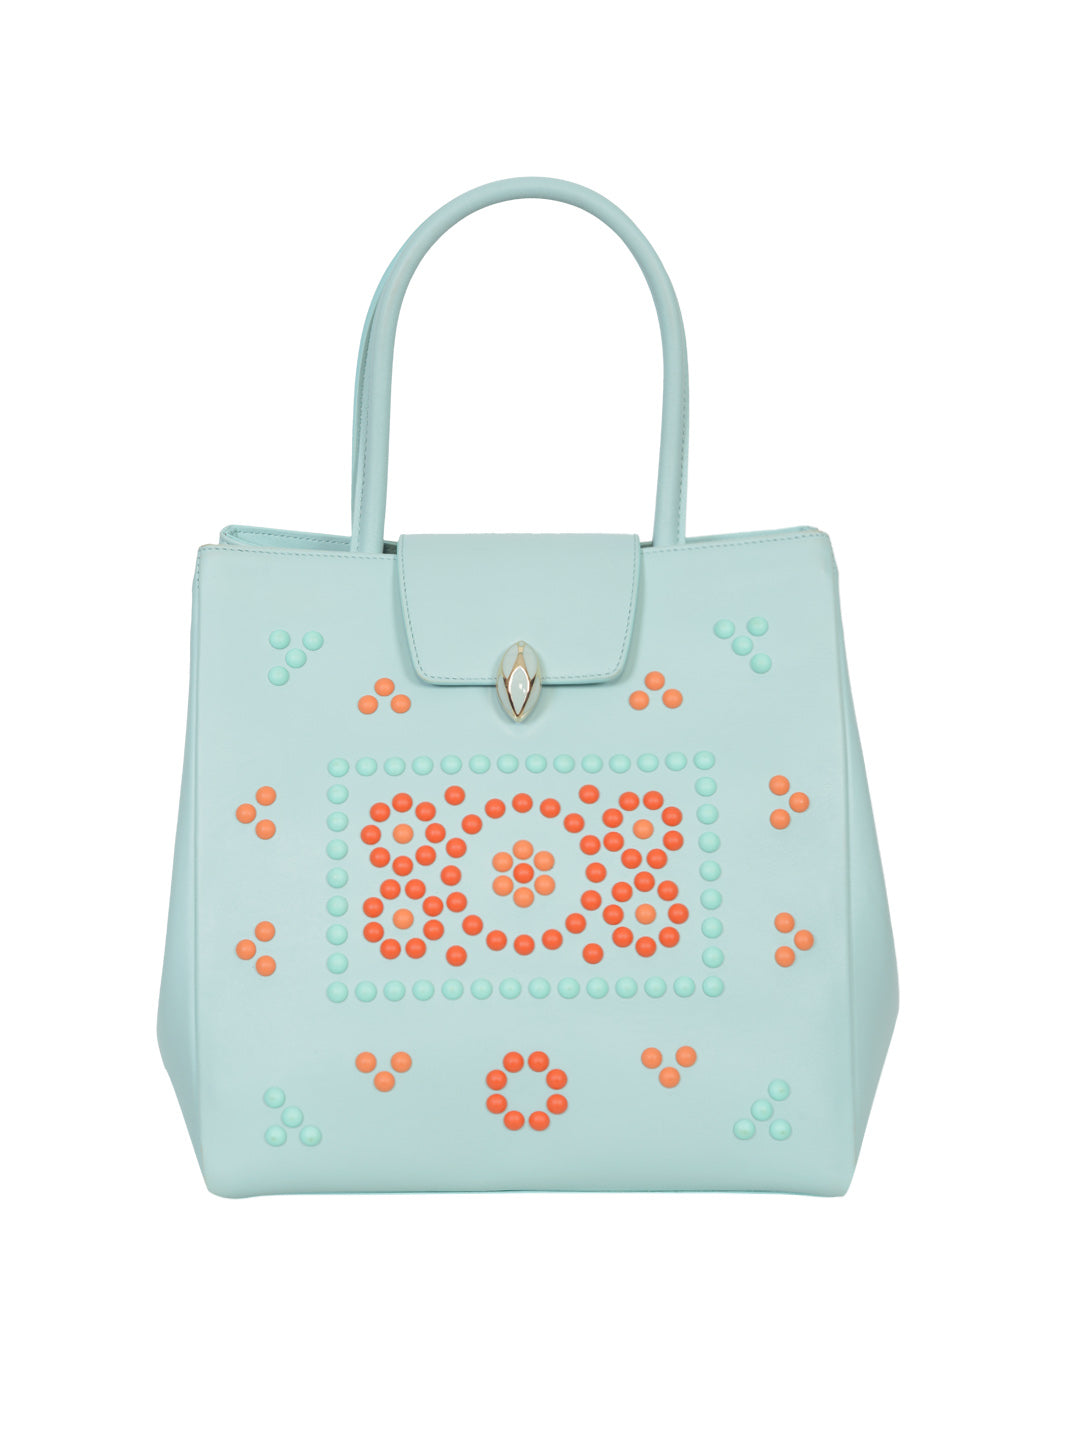 F.E.V BY FRANCESCA VERSACE  LEATHER MEDIUM CITY TOTE AQUA GREEN COLOR BAG WITH MULTICOLOR STUDS